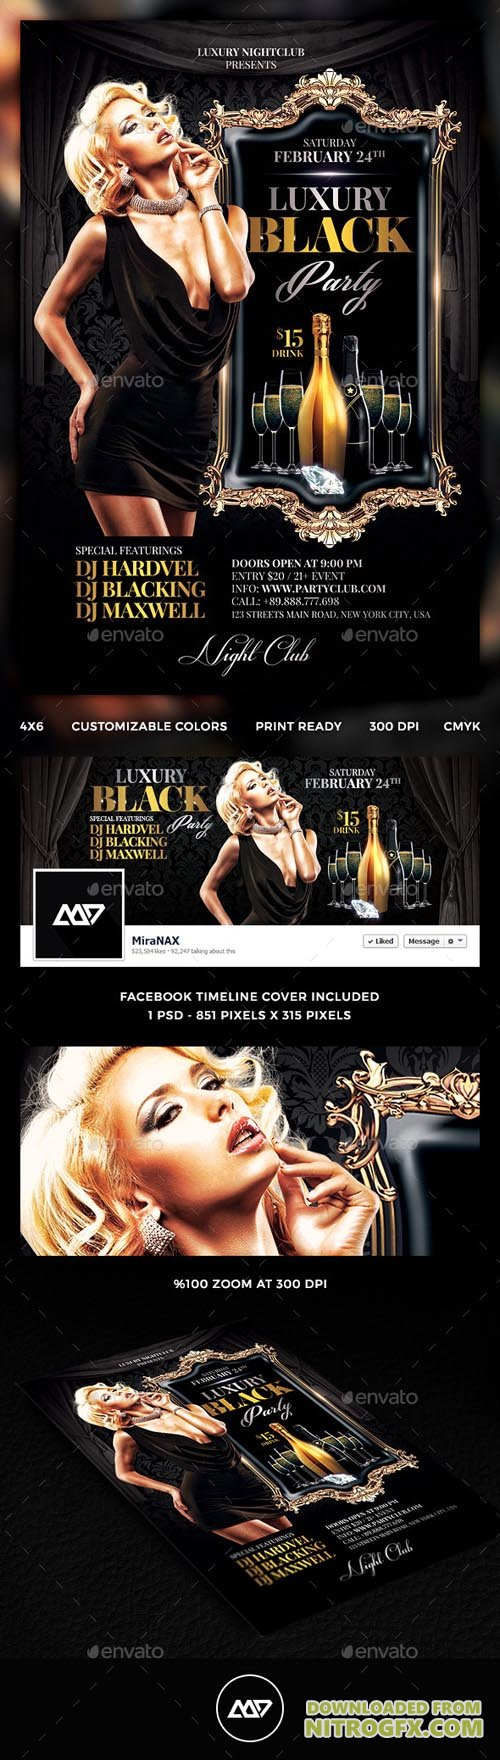 GR - Luxury Black Party Flyer 11957375